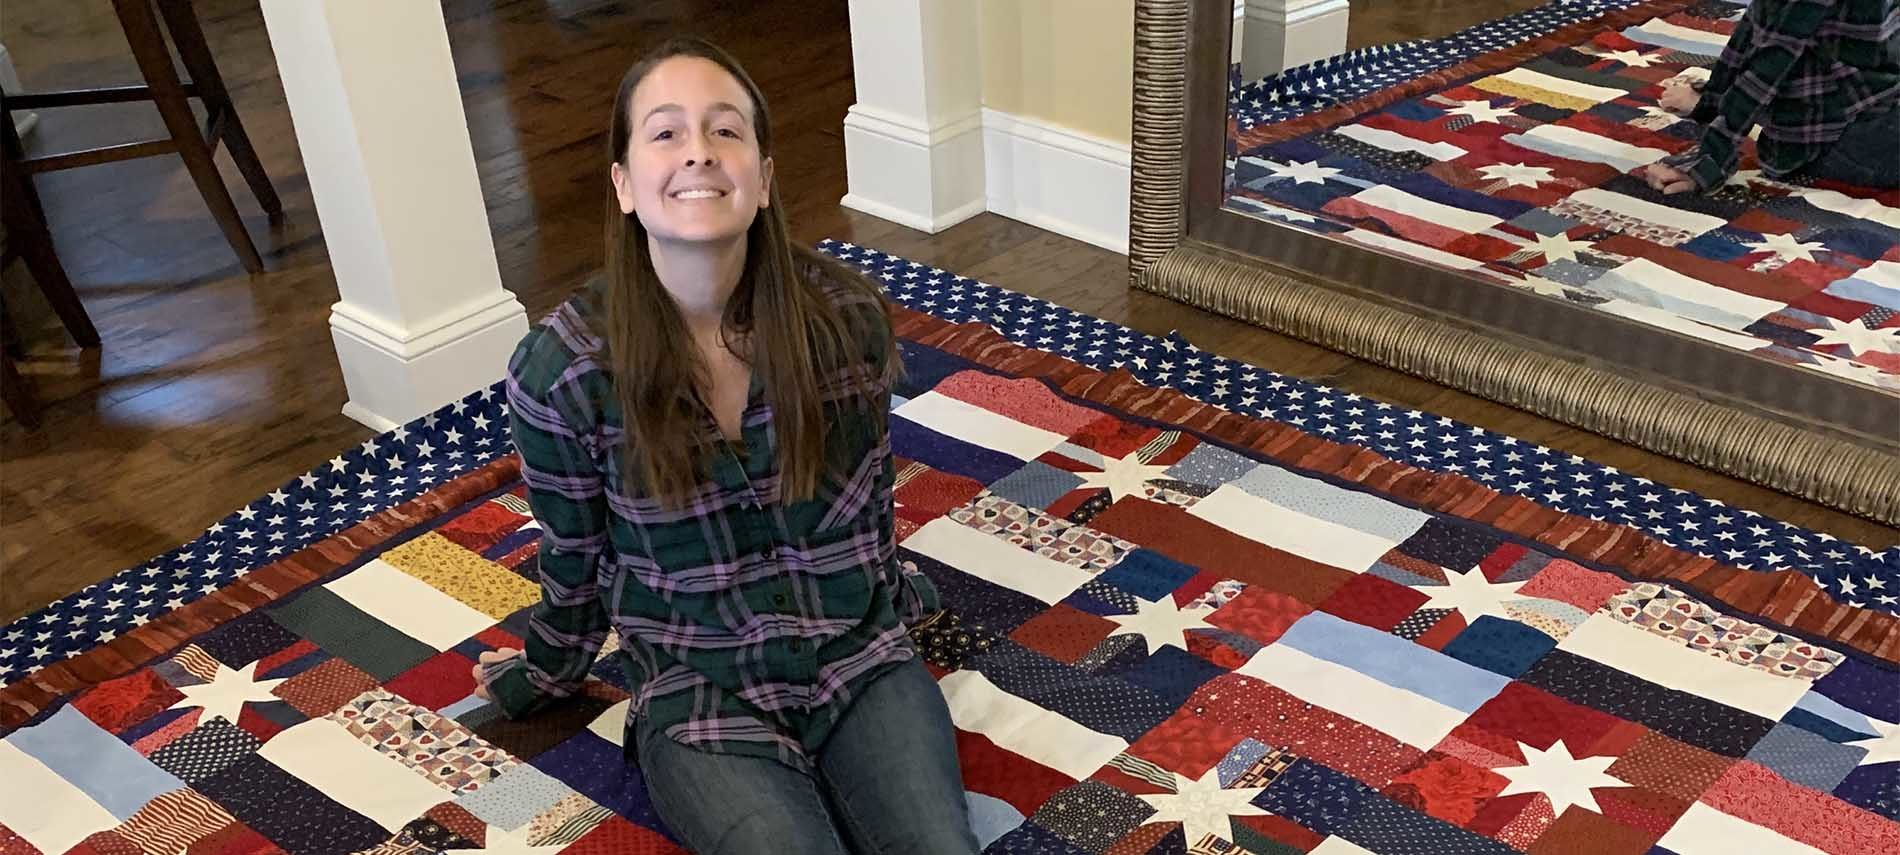 Young woman sitting upon a quilt stretched across a spanse of floor with mirror to show a different angle. Quilt pattern is white 8 point stars on different fields.